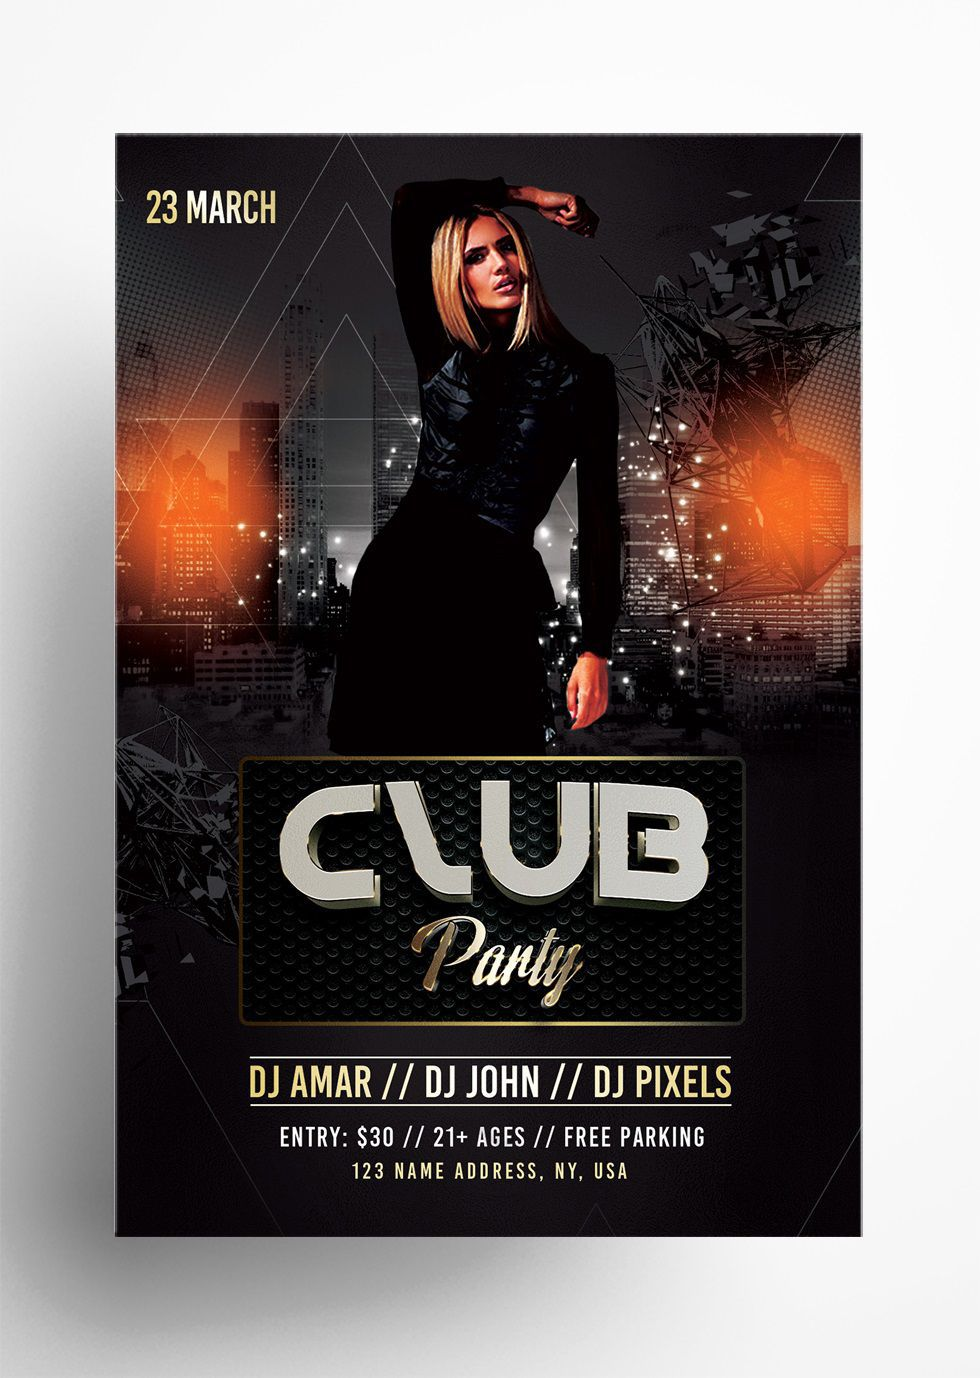 005 Shocking Club Party Flyer Template Free Design Full